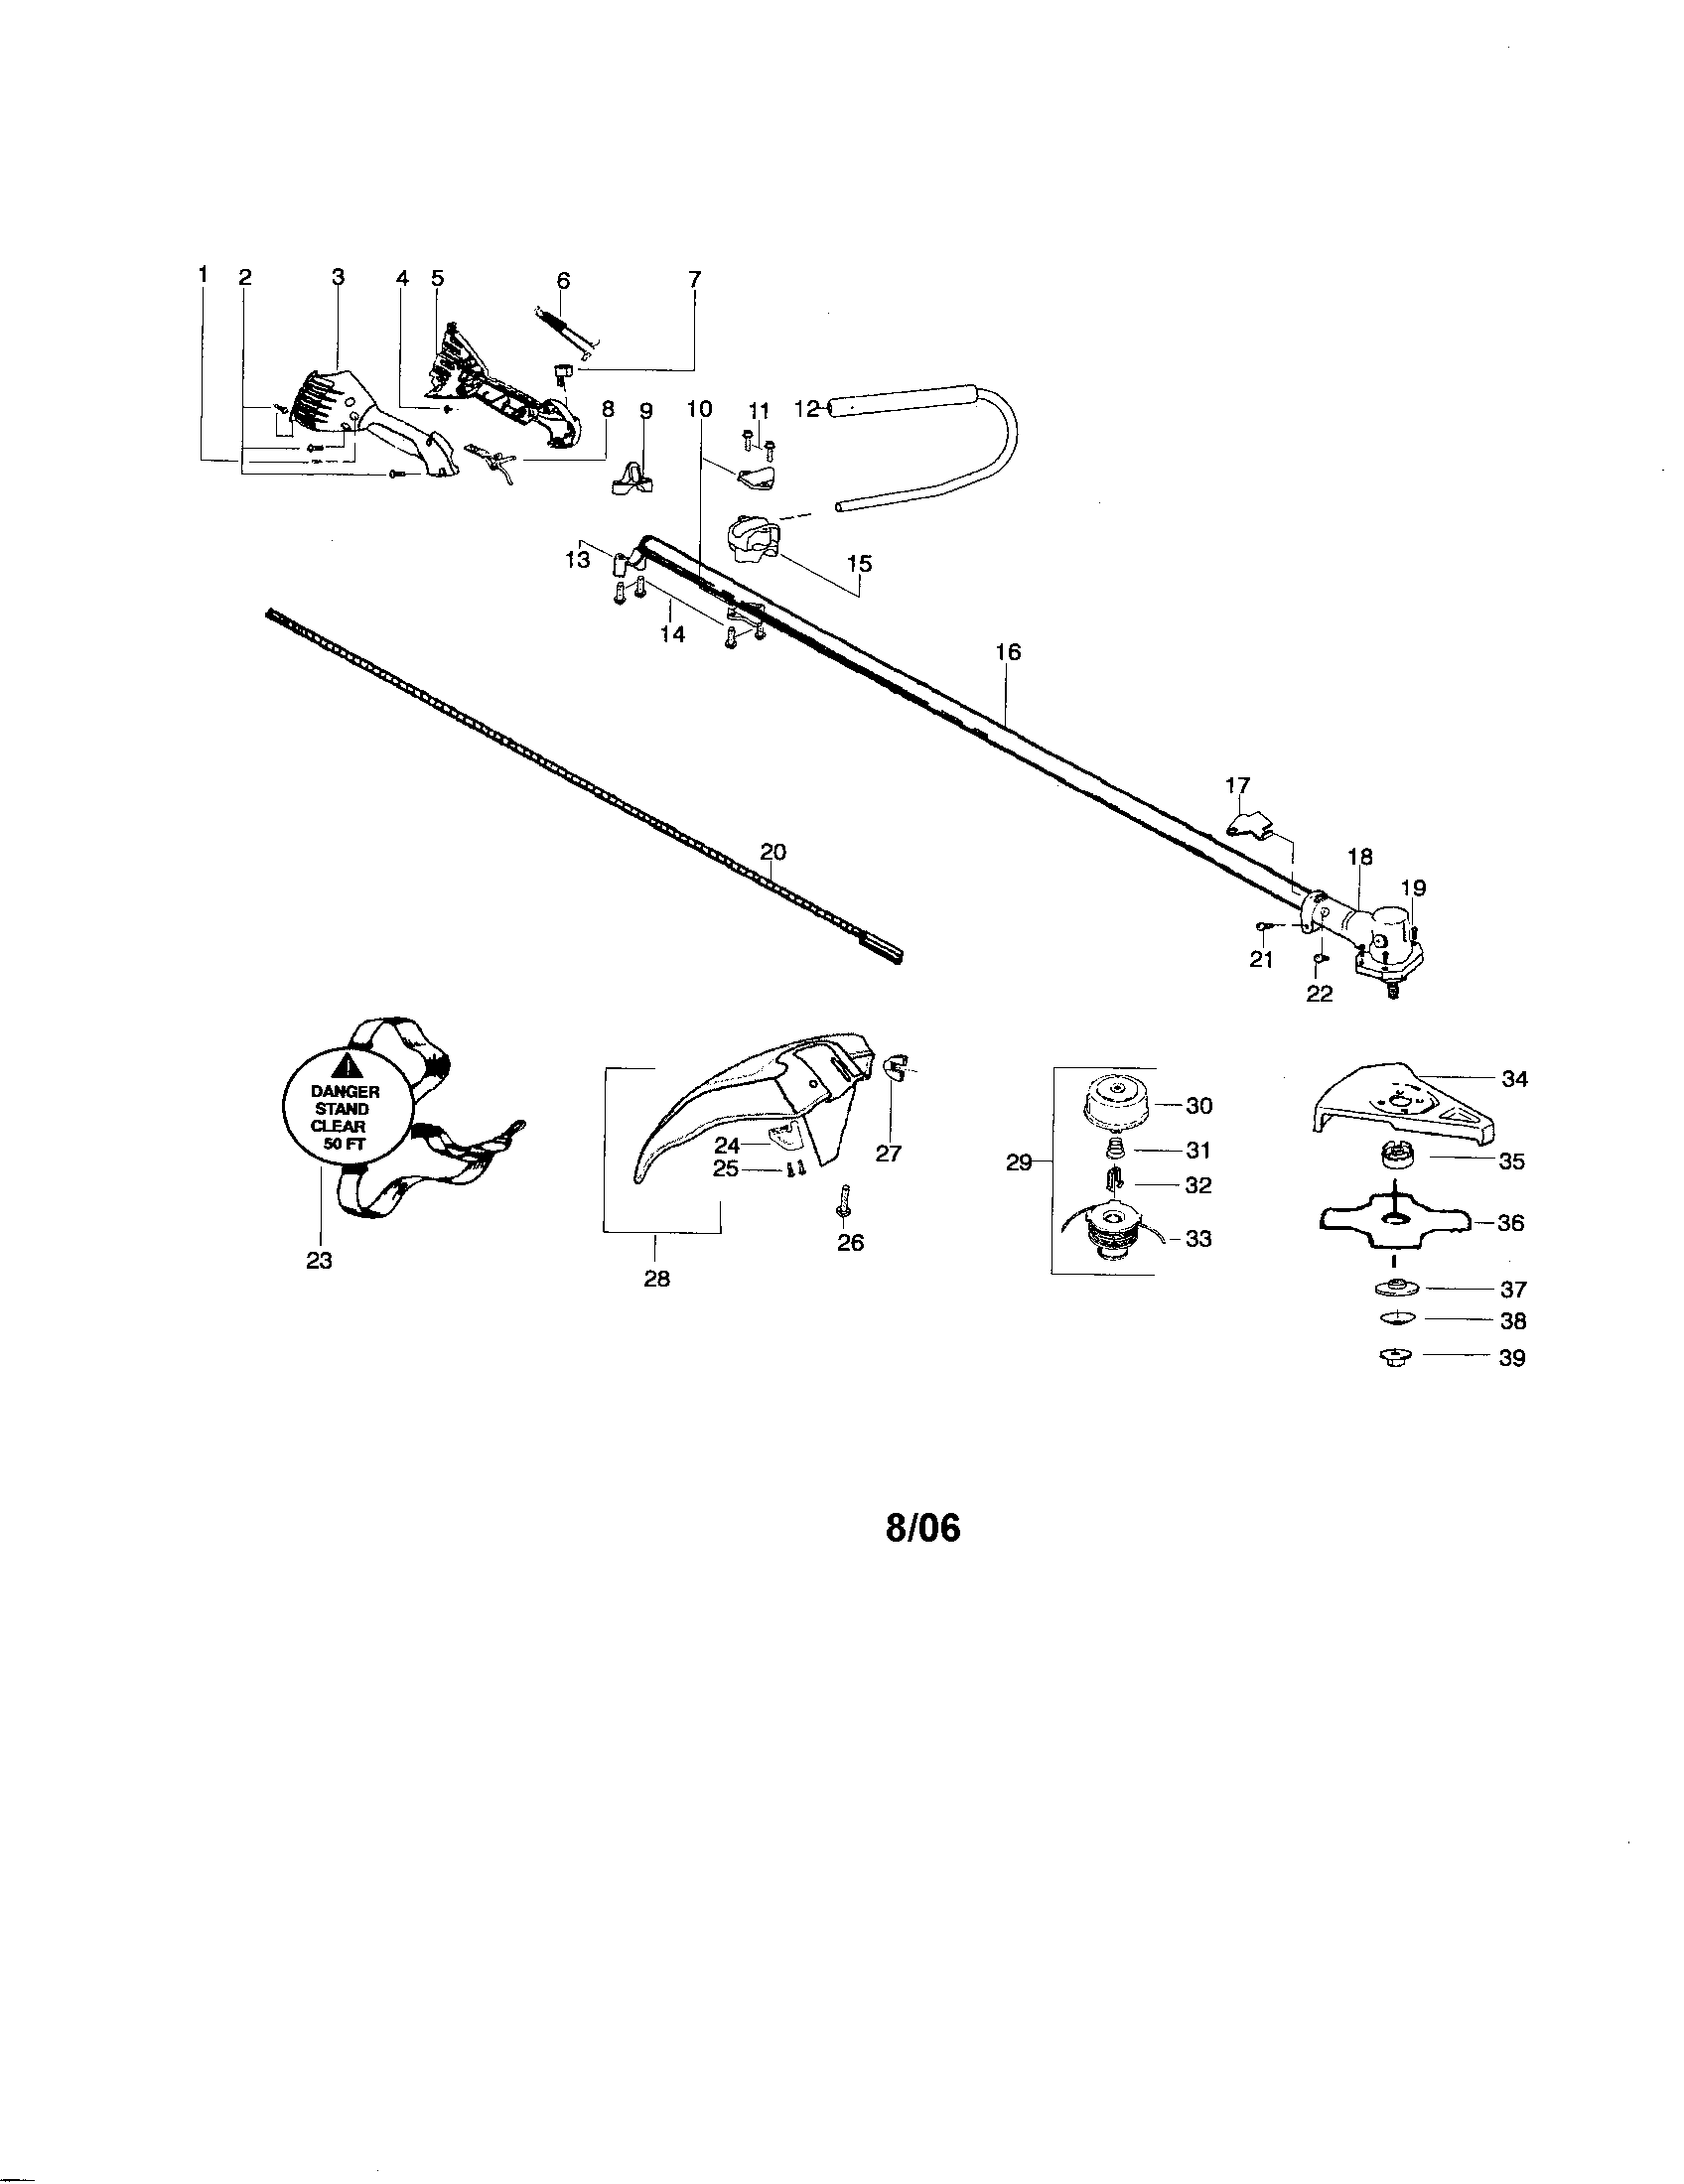 Weed Eater BC3150 driveshaft/shield/handlebar diagram